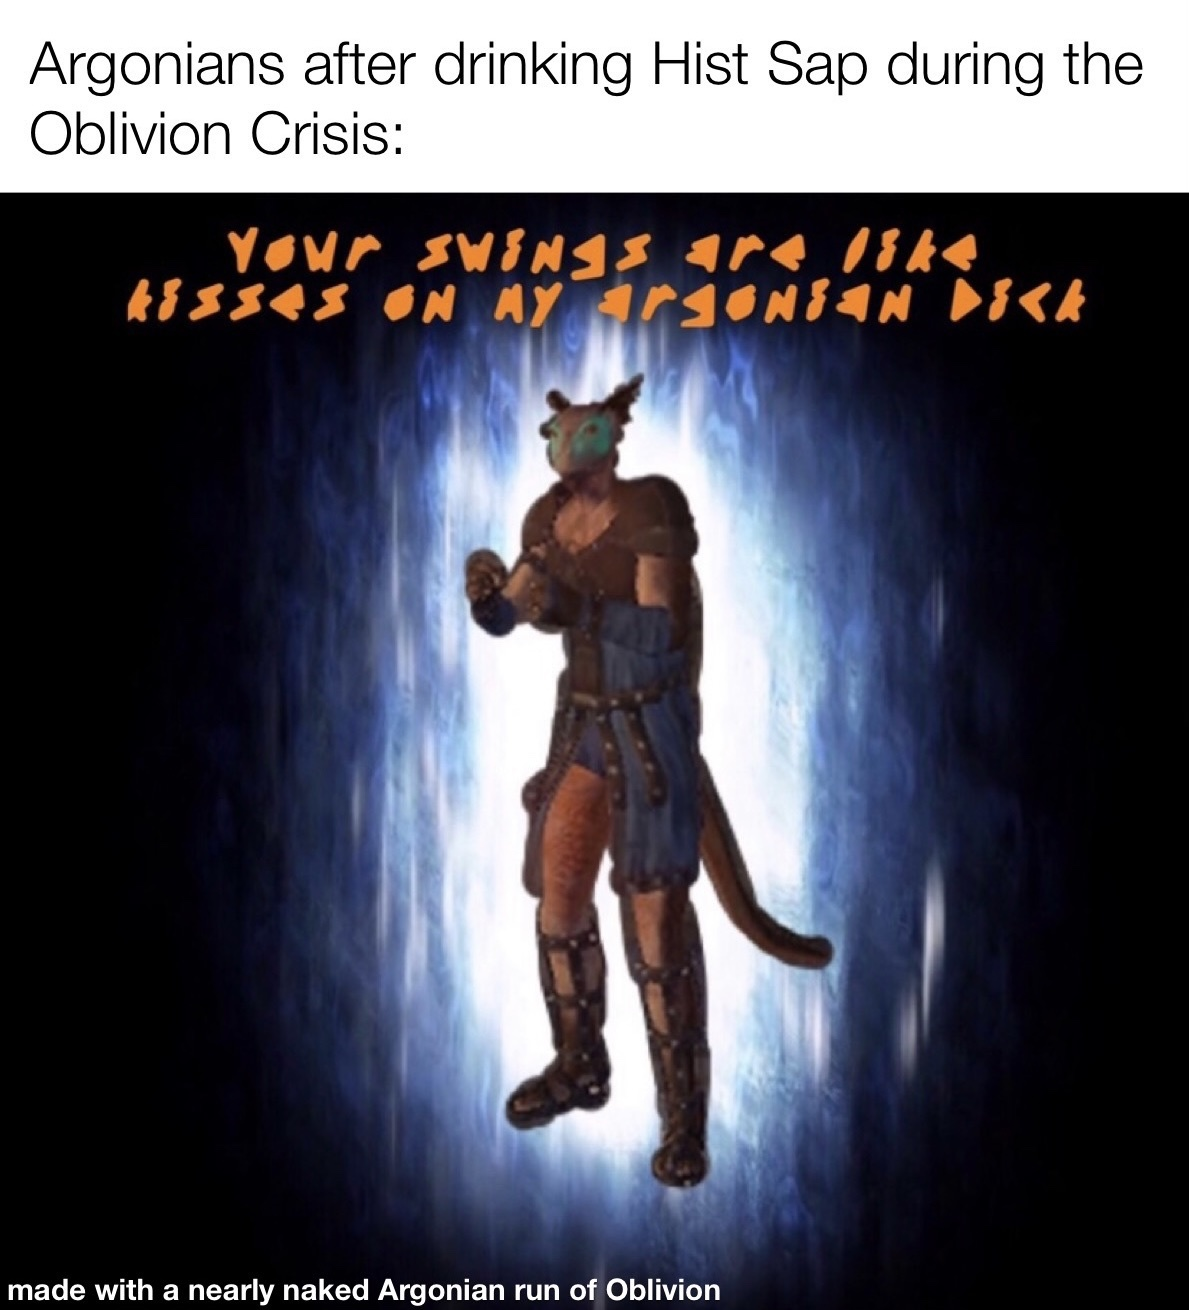 I may be exaggerating the events of Oblivion in Black March - meme